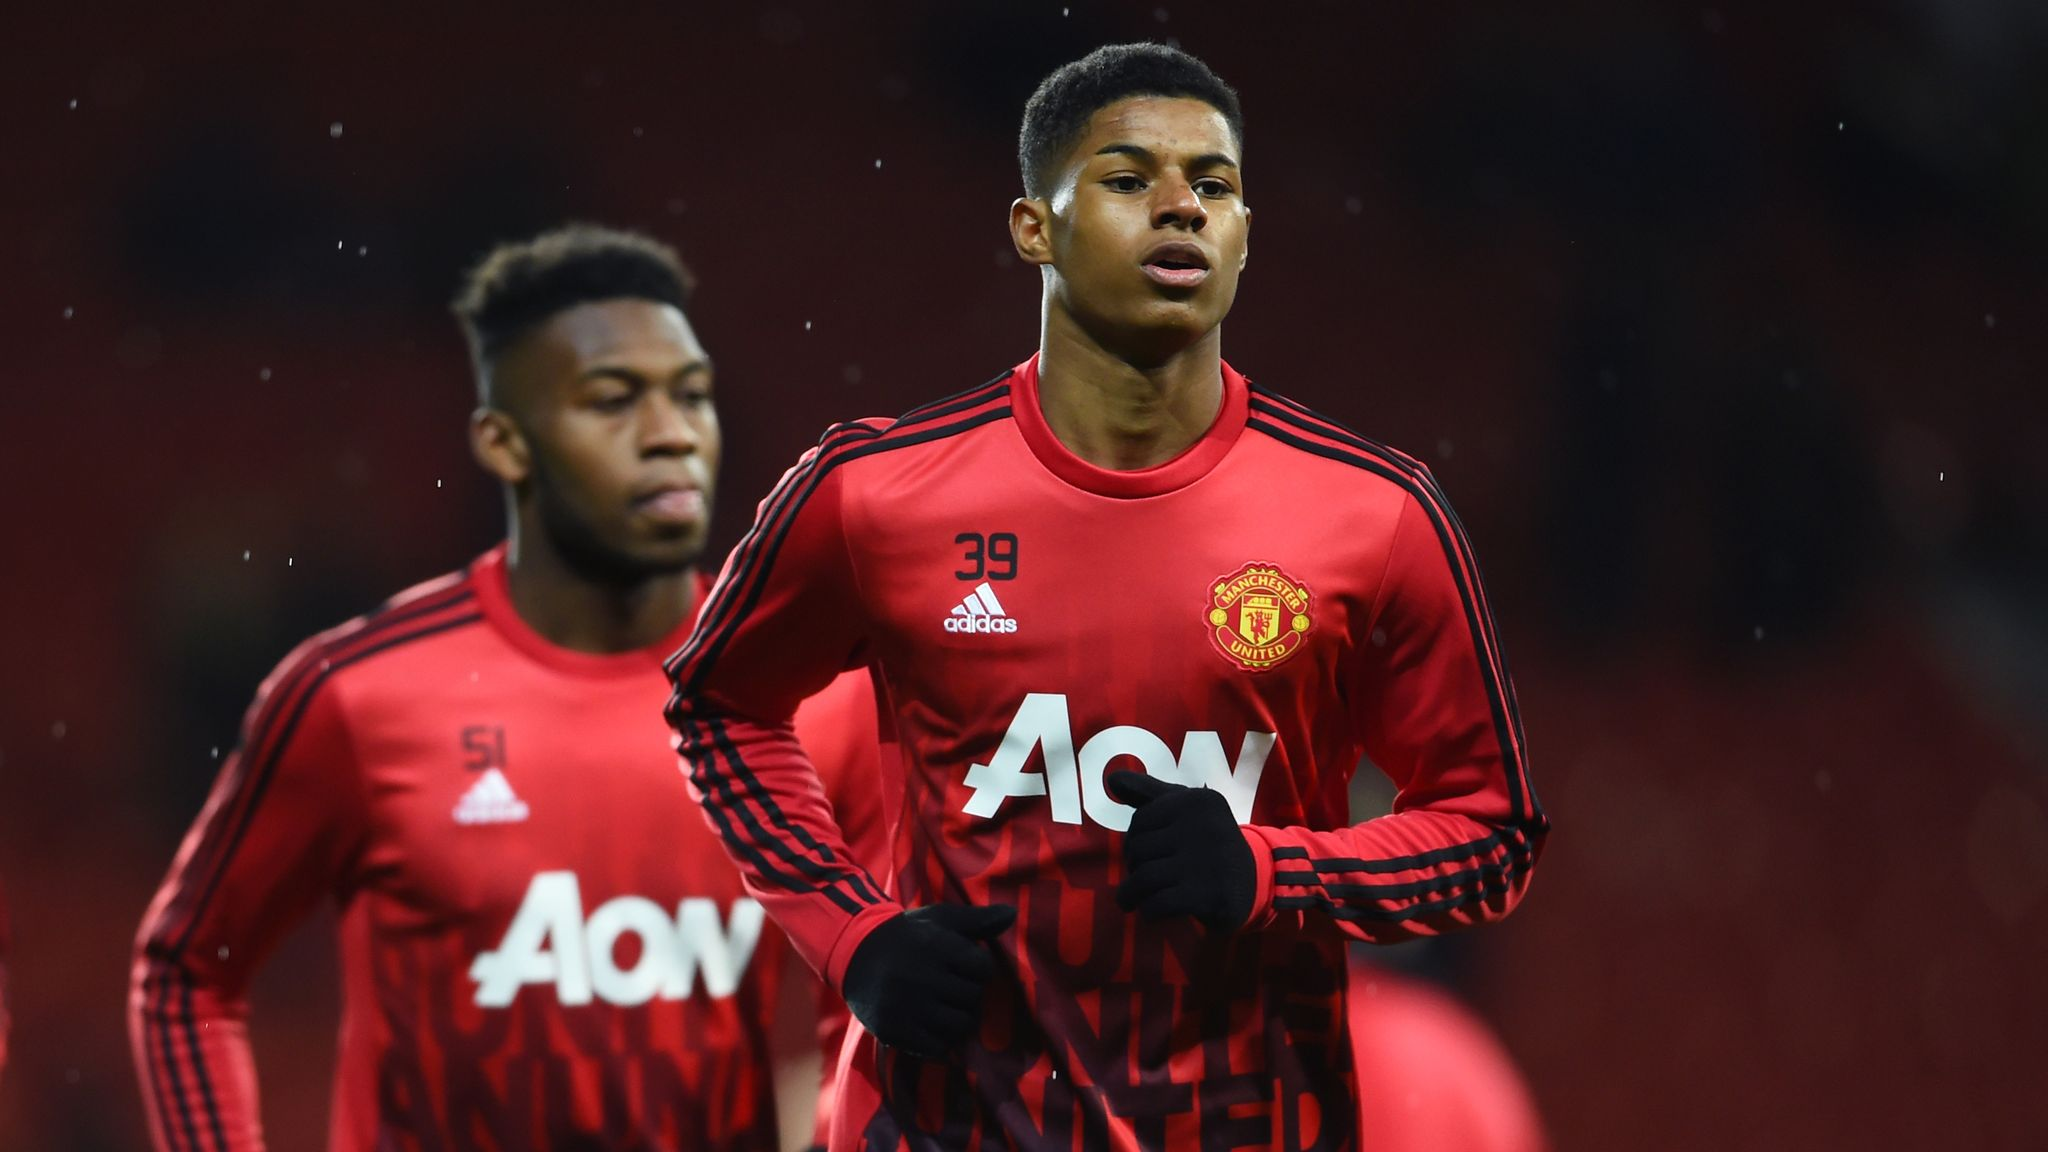 Manchester United S Young Players Are Helping Turn Things Around Says David Prutton Football News Sky Sports